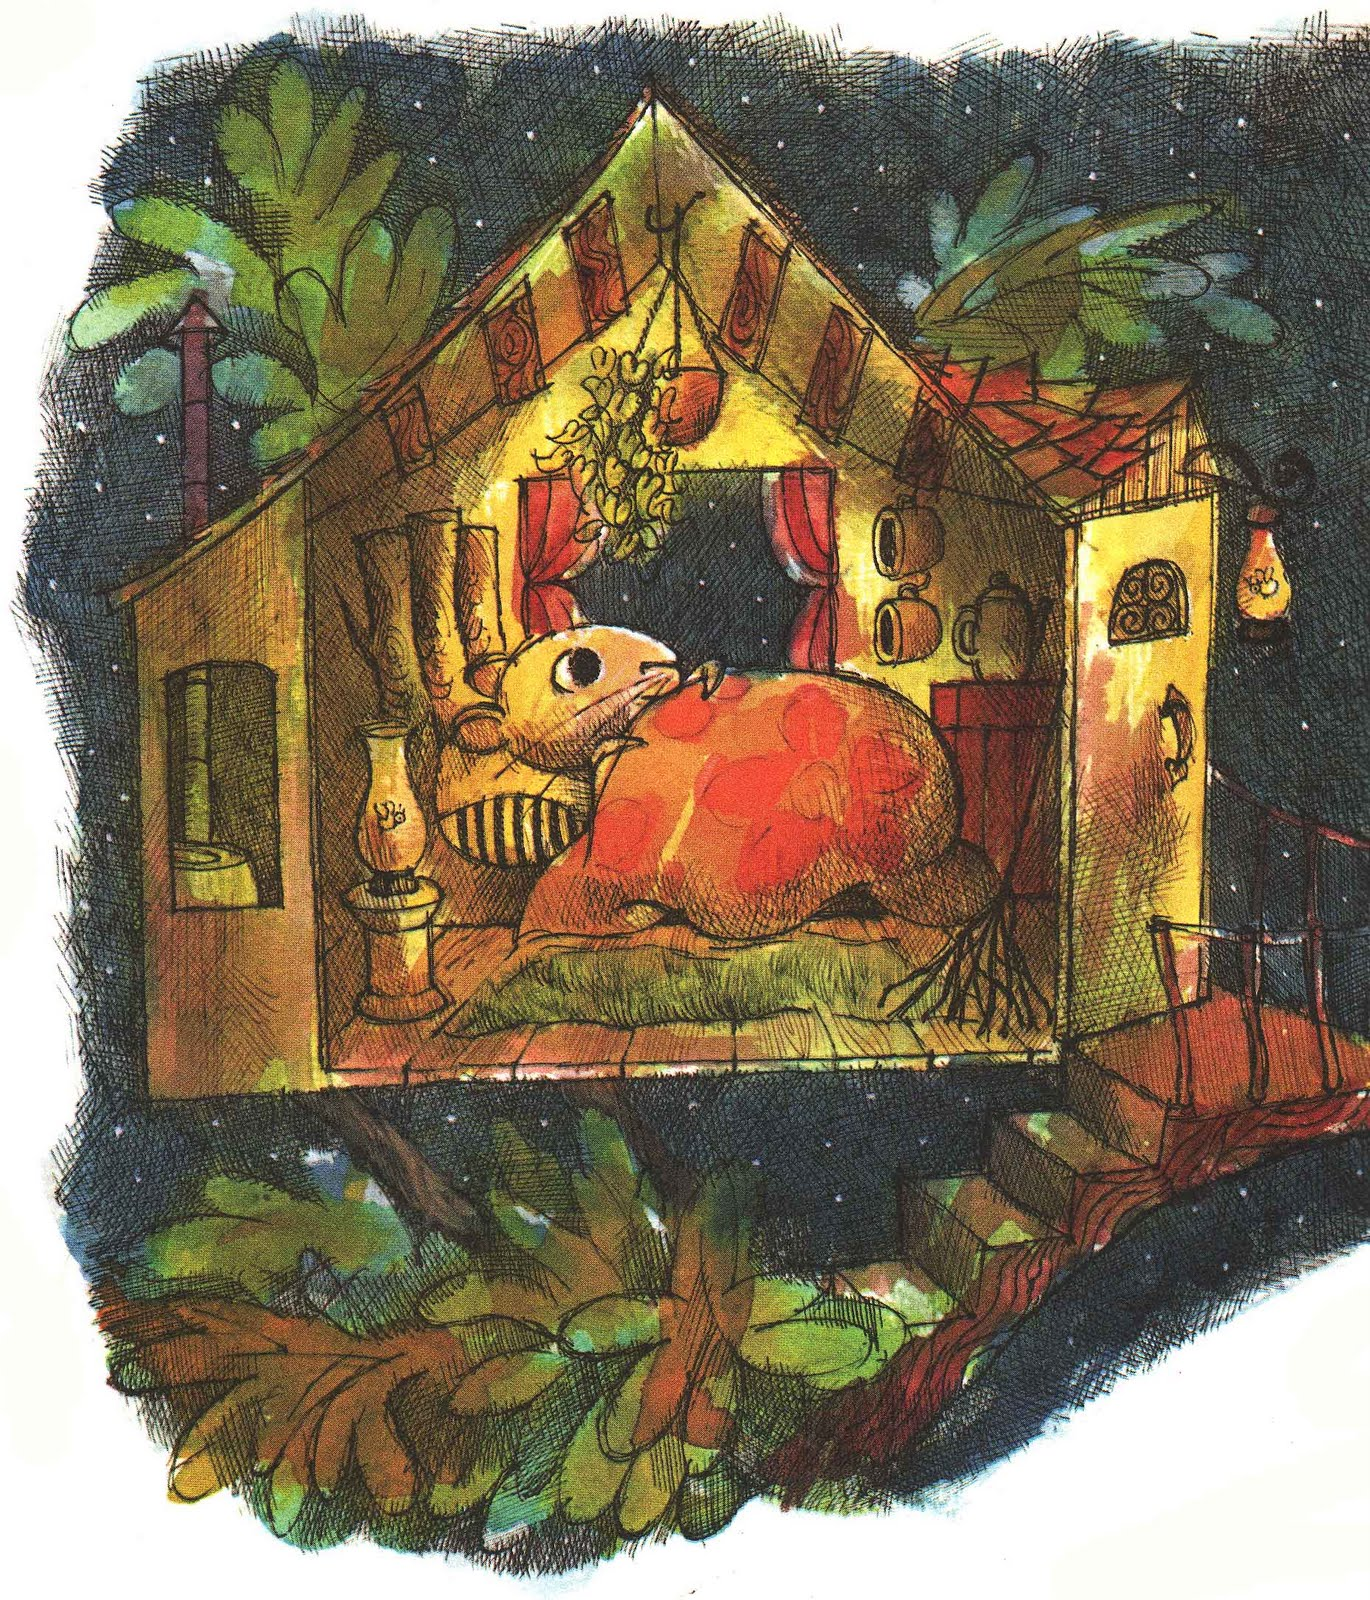 Miss Suzy, one my favorite children's book characters, being hella liminal